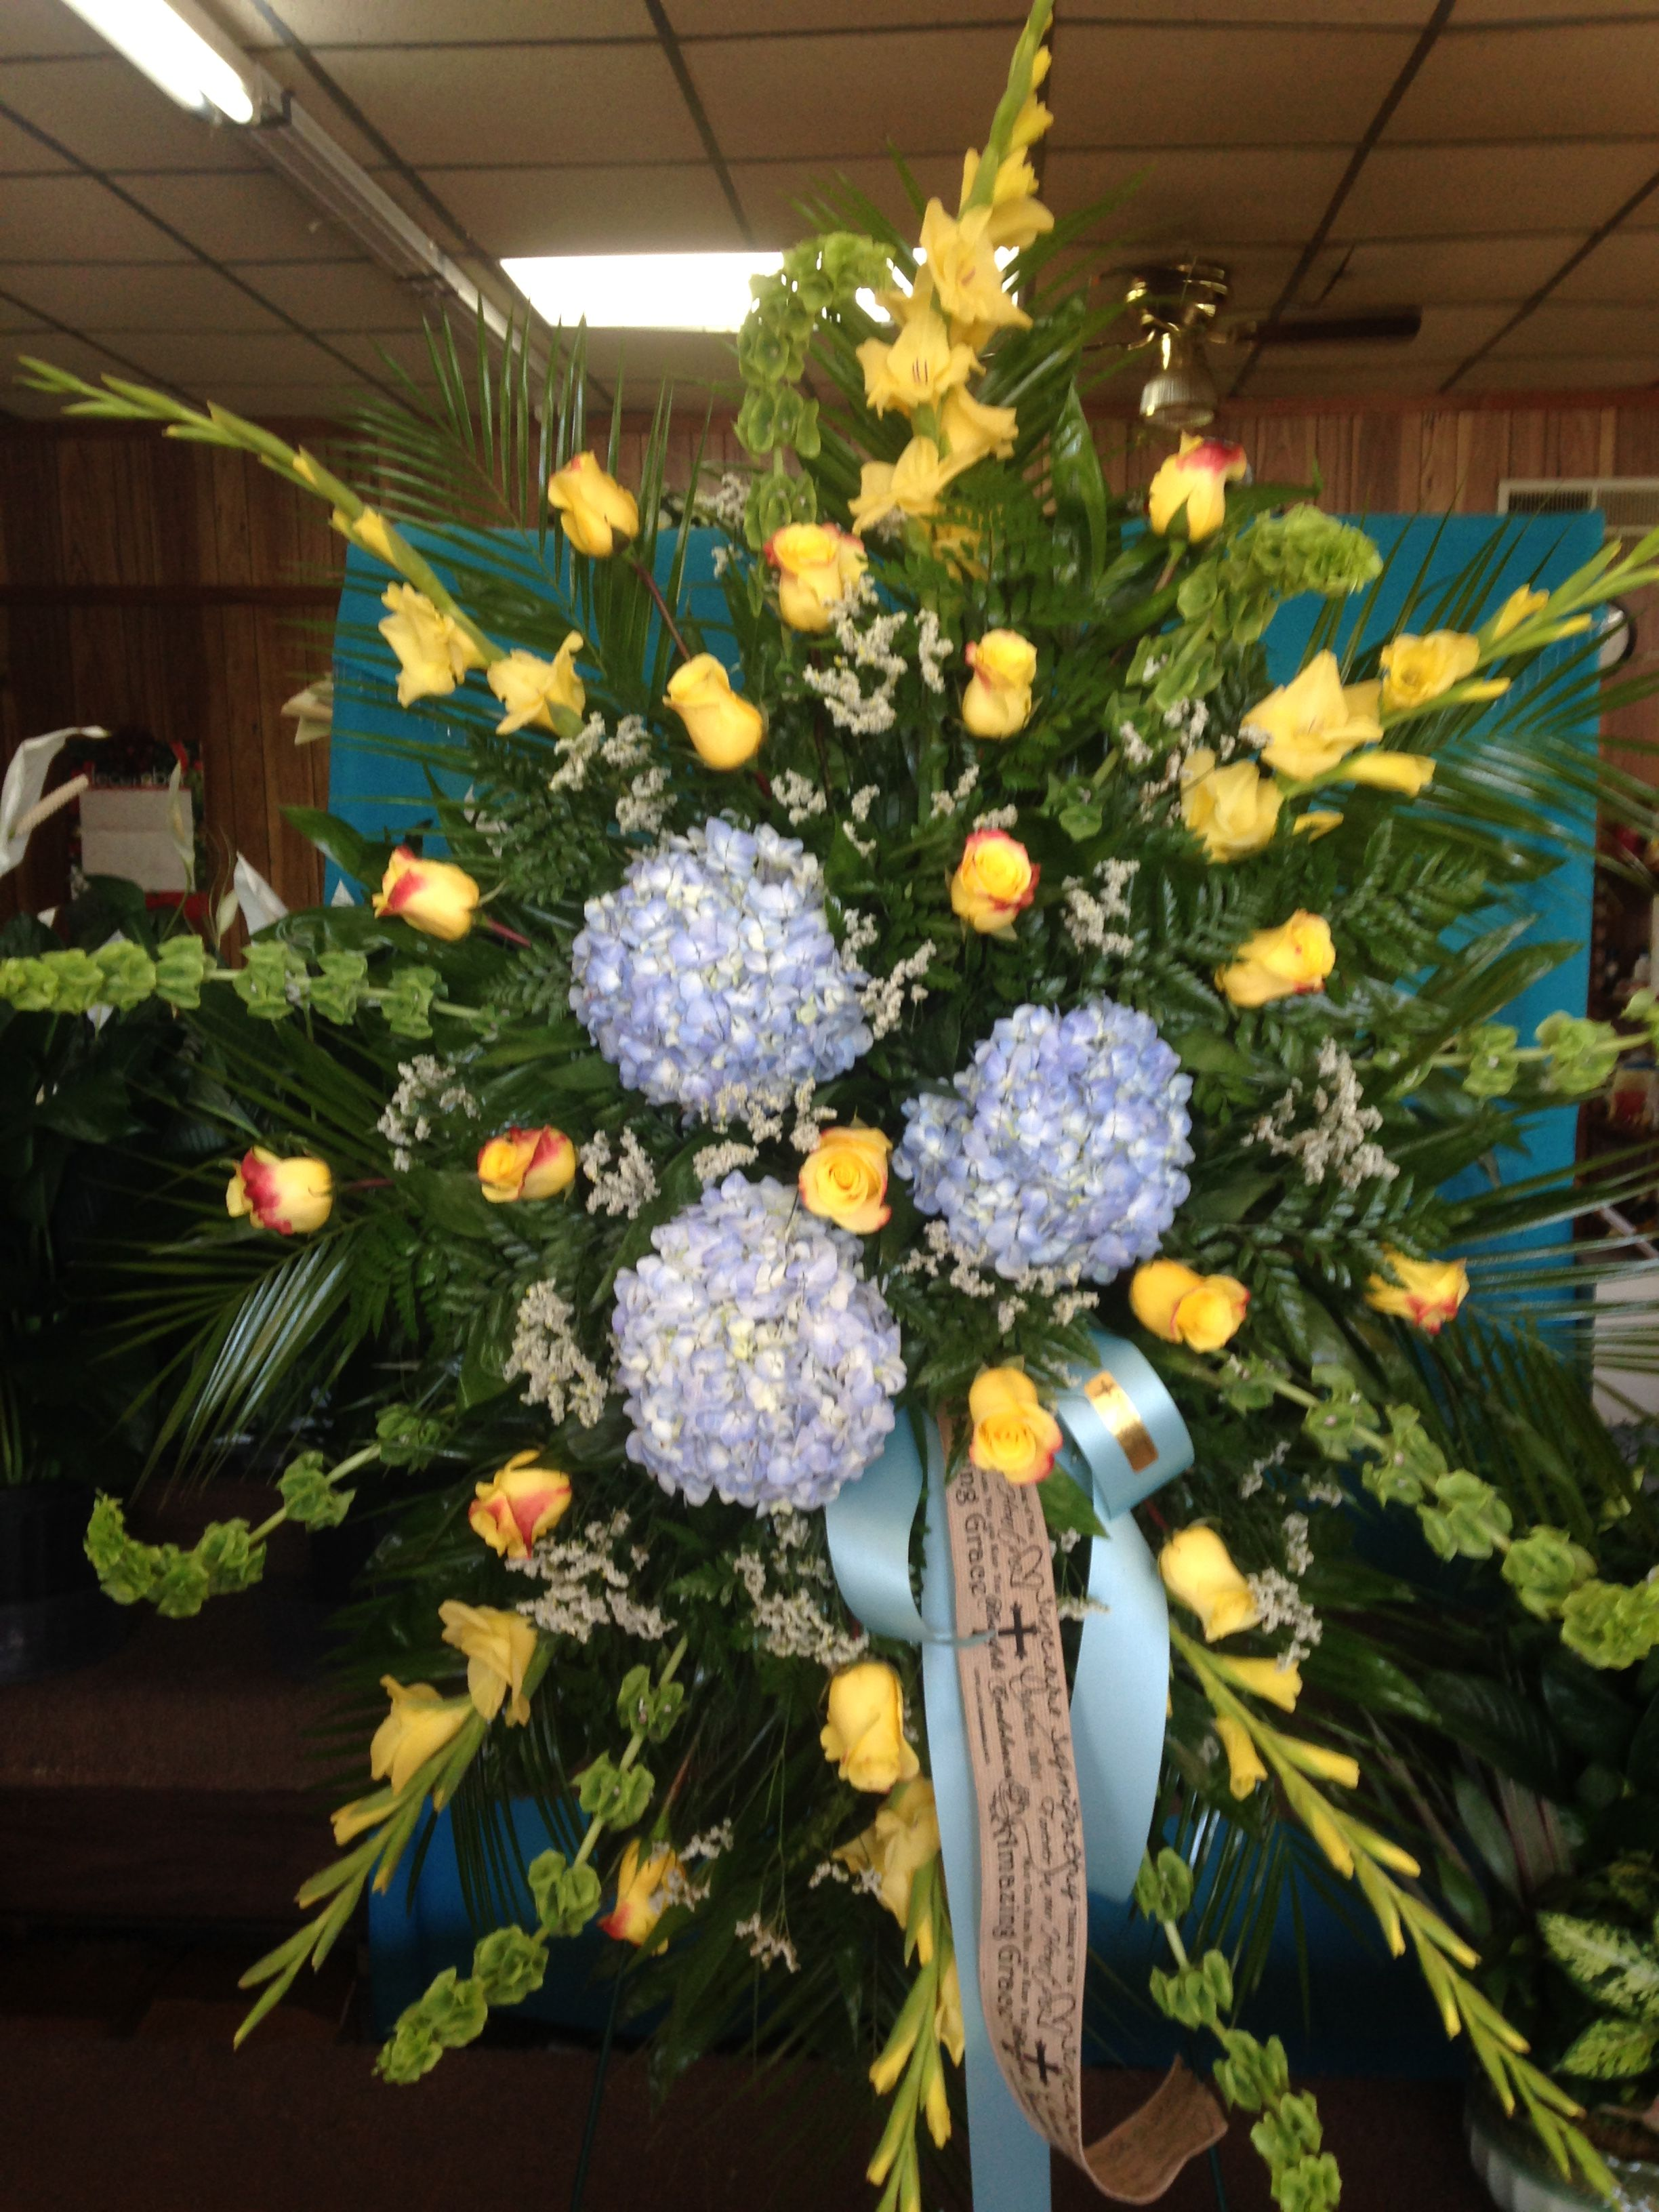 Fresh Funeral Spray Using Blue Hydrangeas Yellow Gladiolus Bells Of Ireland Red Tipped Yellow Roses And White Flowers For You Funeral Sprays Blue Hydrangea